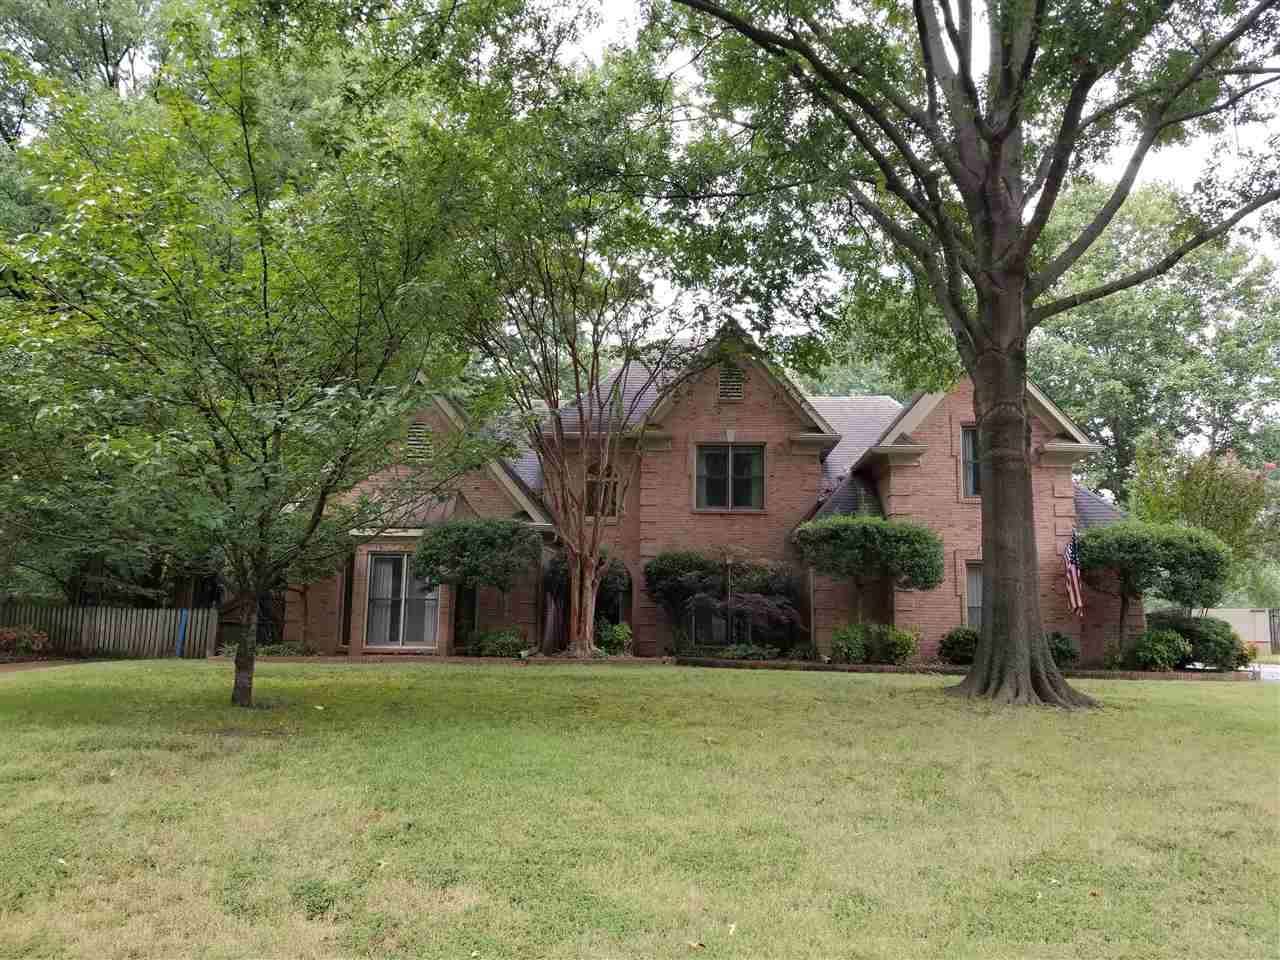 6732 N Kirby Oaks Memphis, TN 38119 - MLS #: 10010448